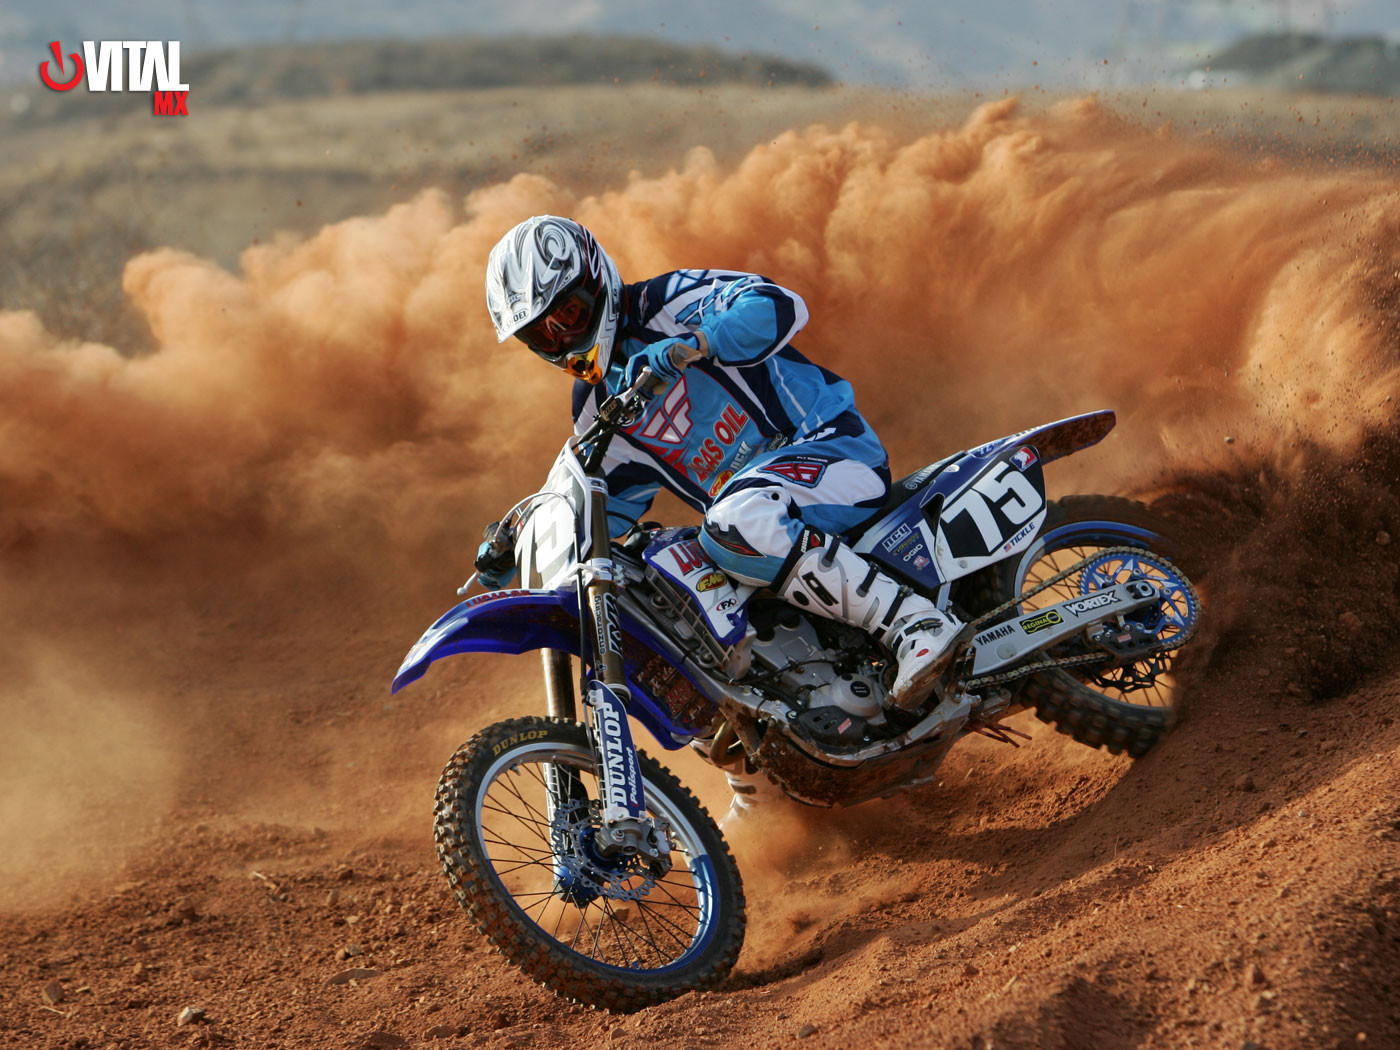 Broc Tickle 1400 x 1050 - 2006 Lucas Oil Yamaha Wallpapers - Motocross Pictures - Vital MX